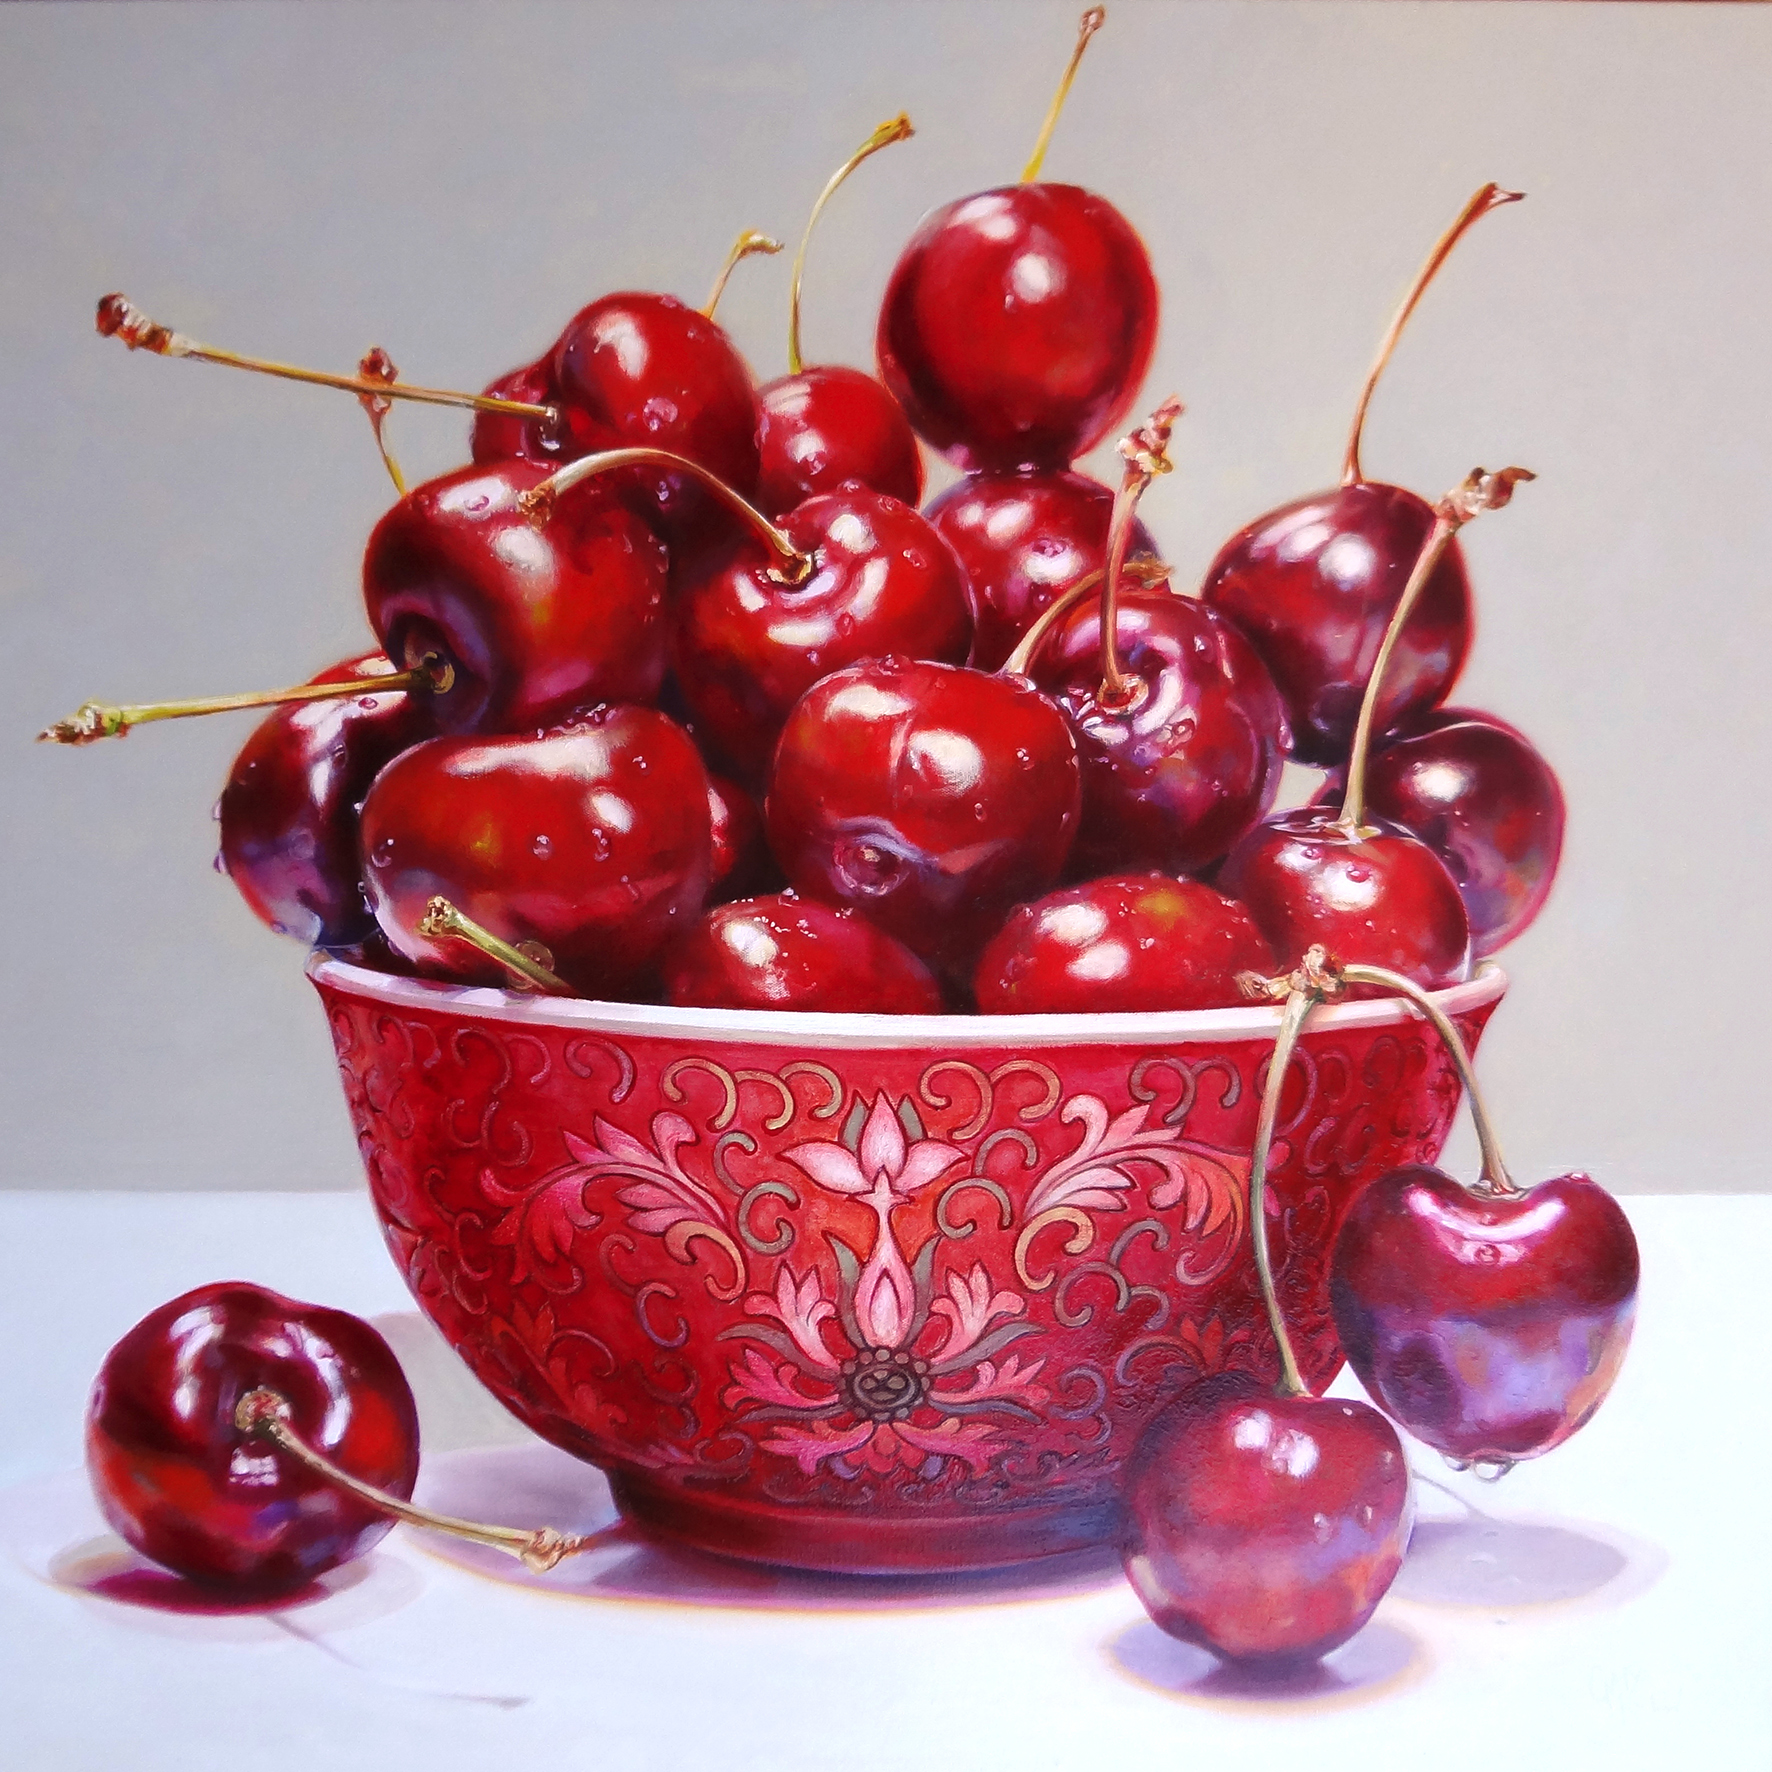 Cherry Amour , 2014, 91 x 91 cm, oil on canvas